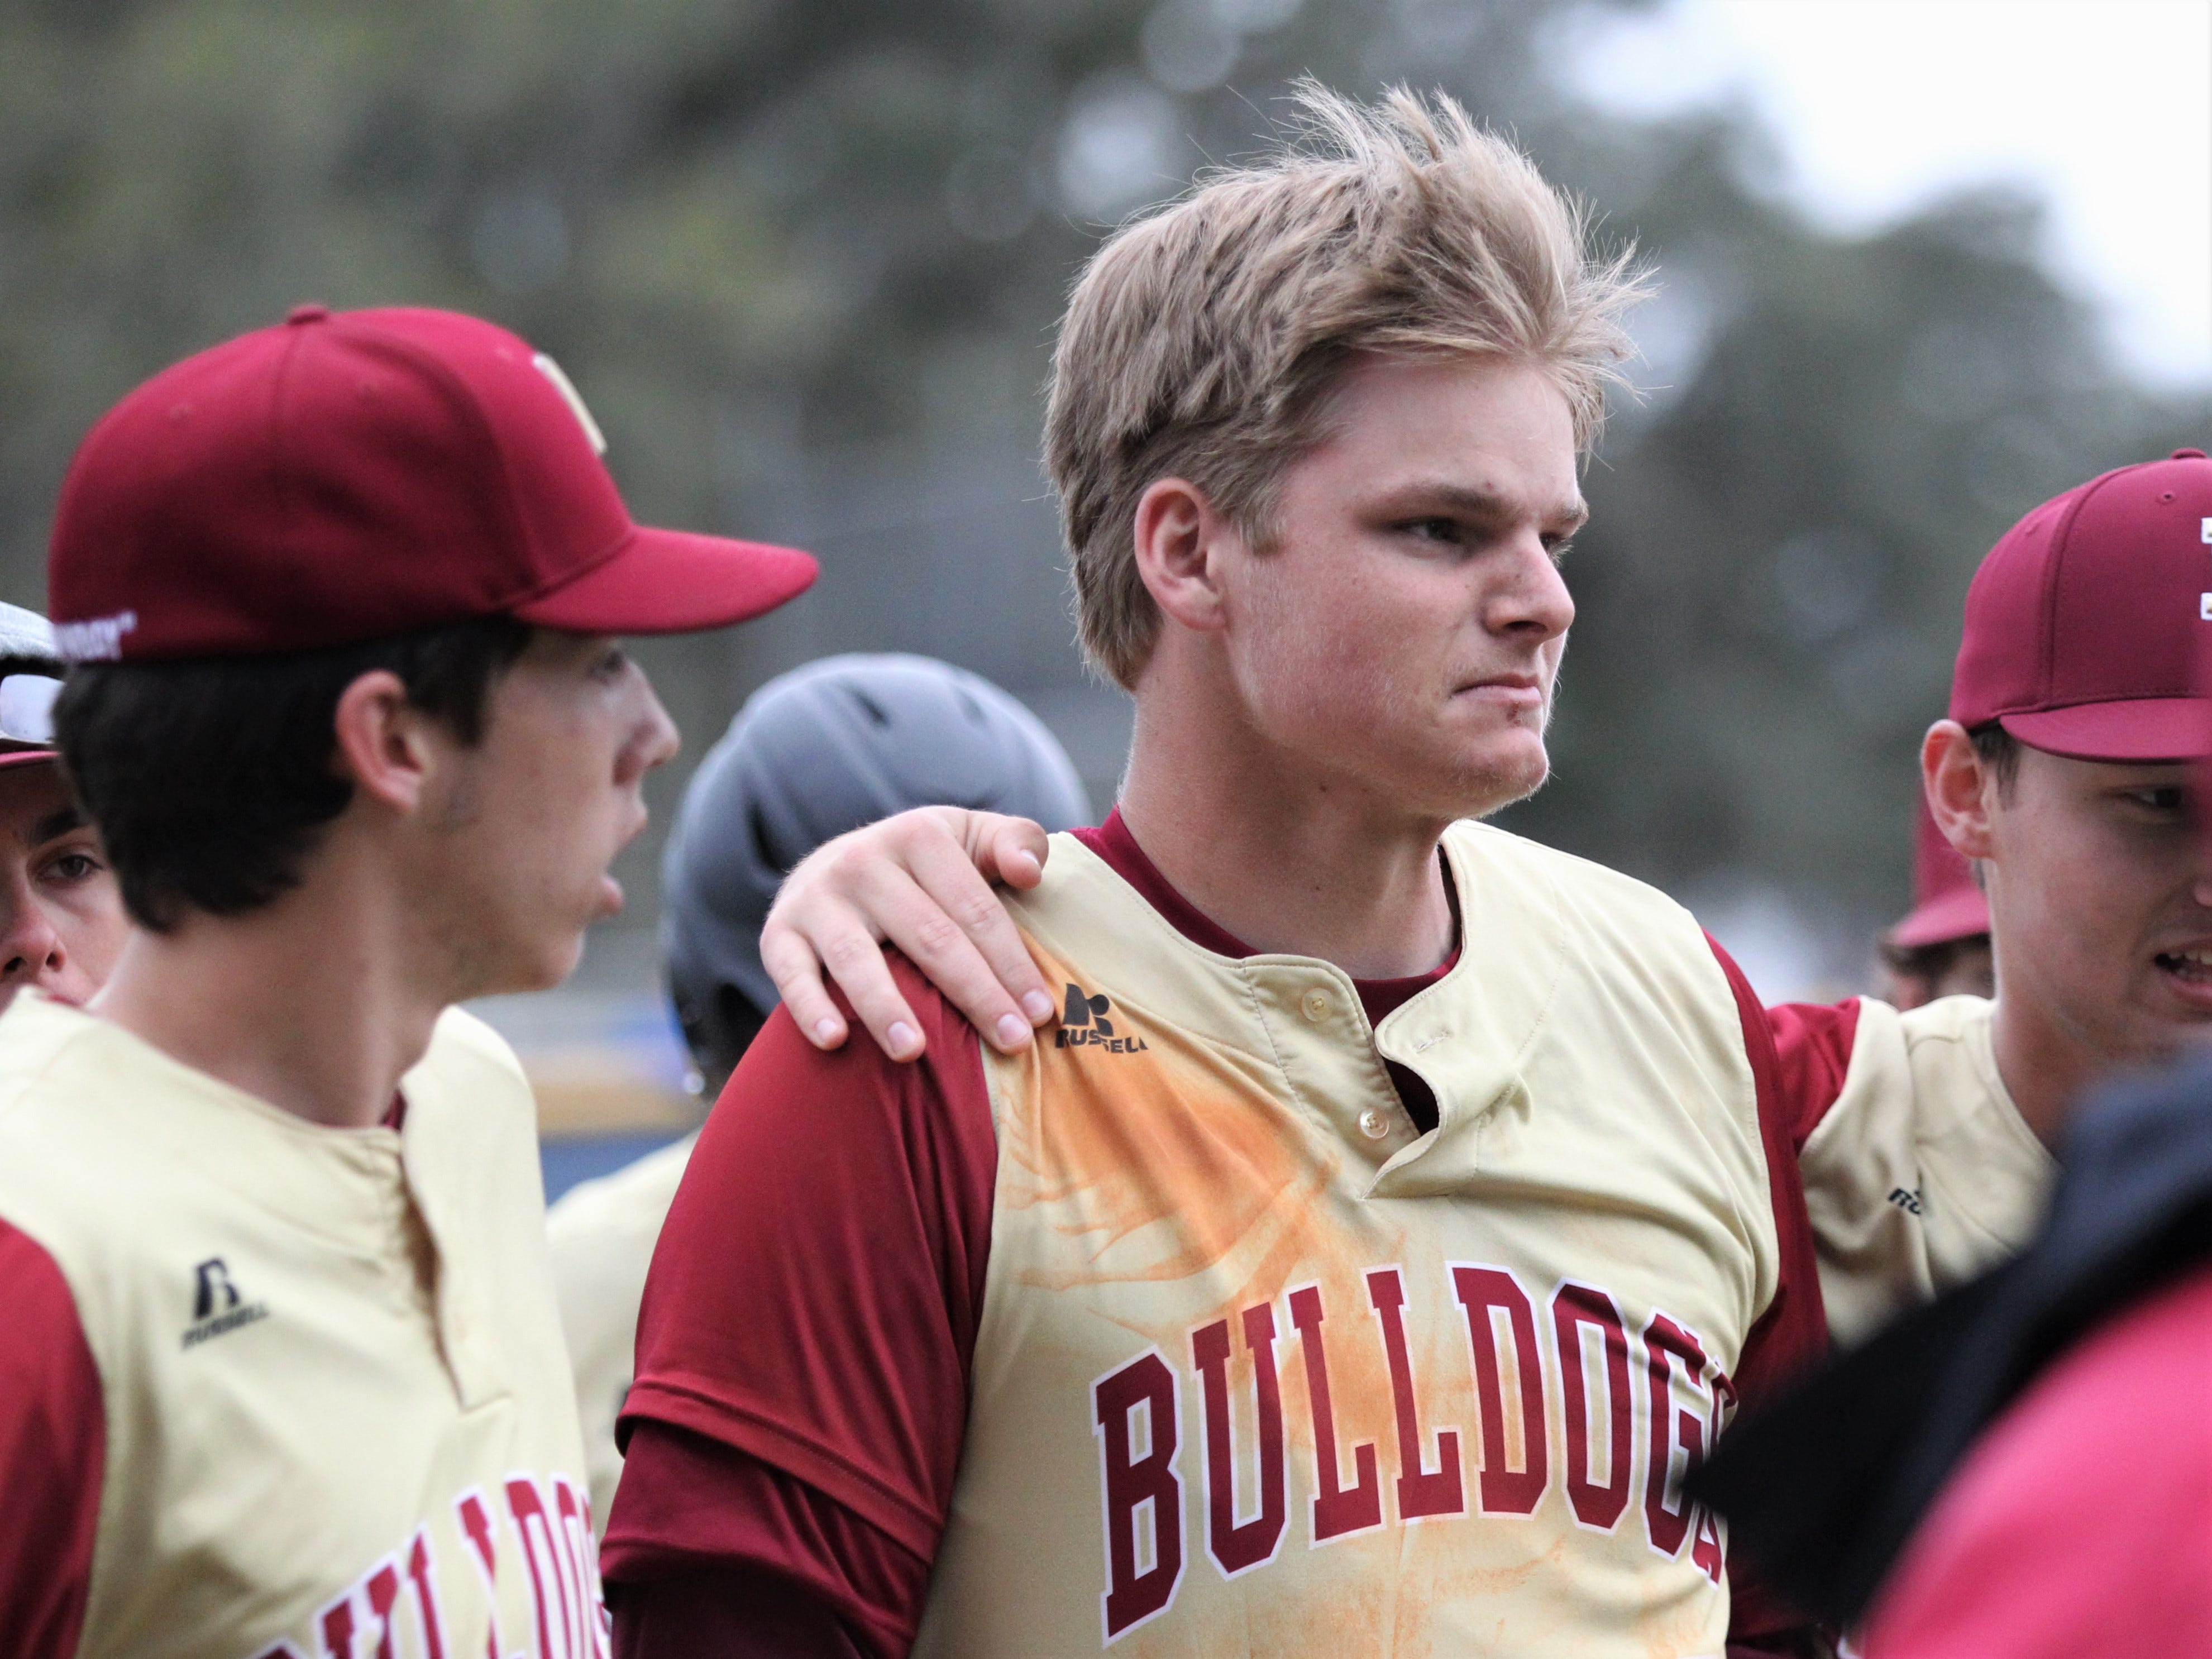 Liberty County senior Brice Dillmore holds in his emotion after a three-run home run as the Bulldogs went on the road to beat Maclay 8-2 on Saturday, March 16, 2019. Liberty County's baseball coach Corey Crum died a week earlier in an accident at the school.